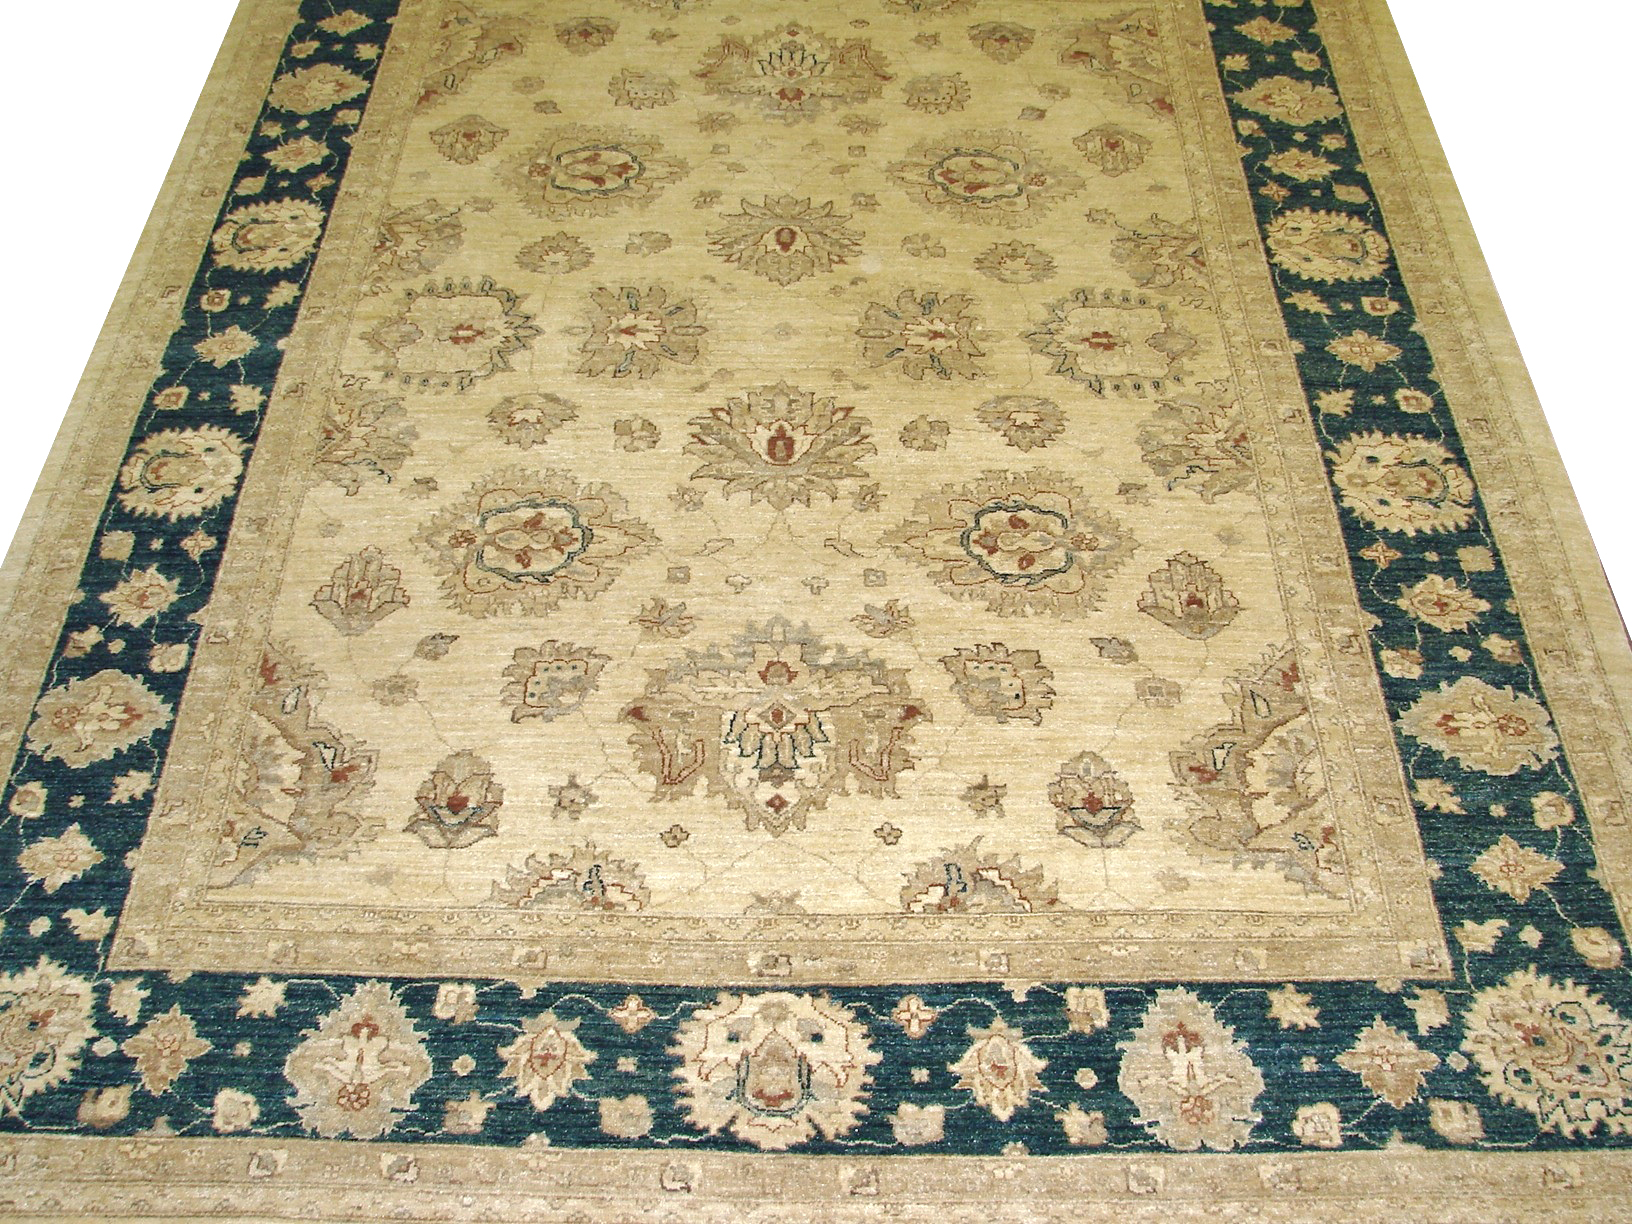 8x10 Peshawar Hand Knotted Wool Area Rug - MR10606